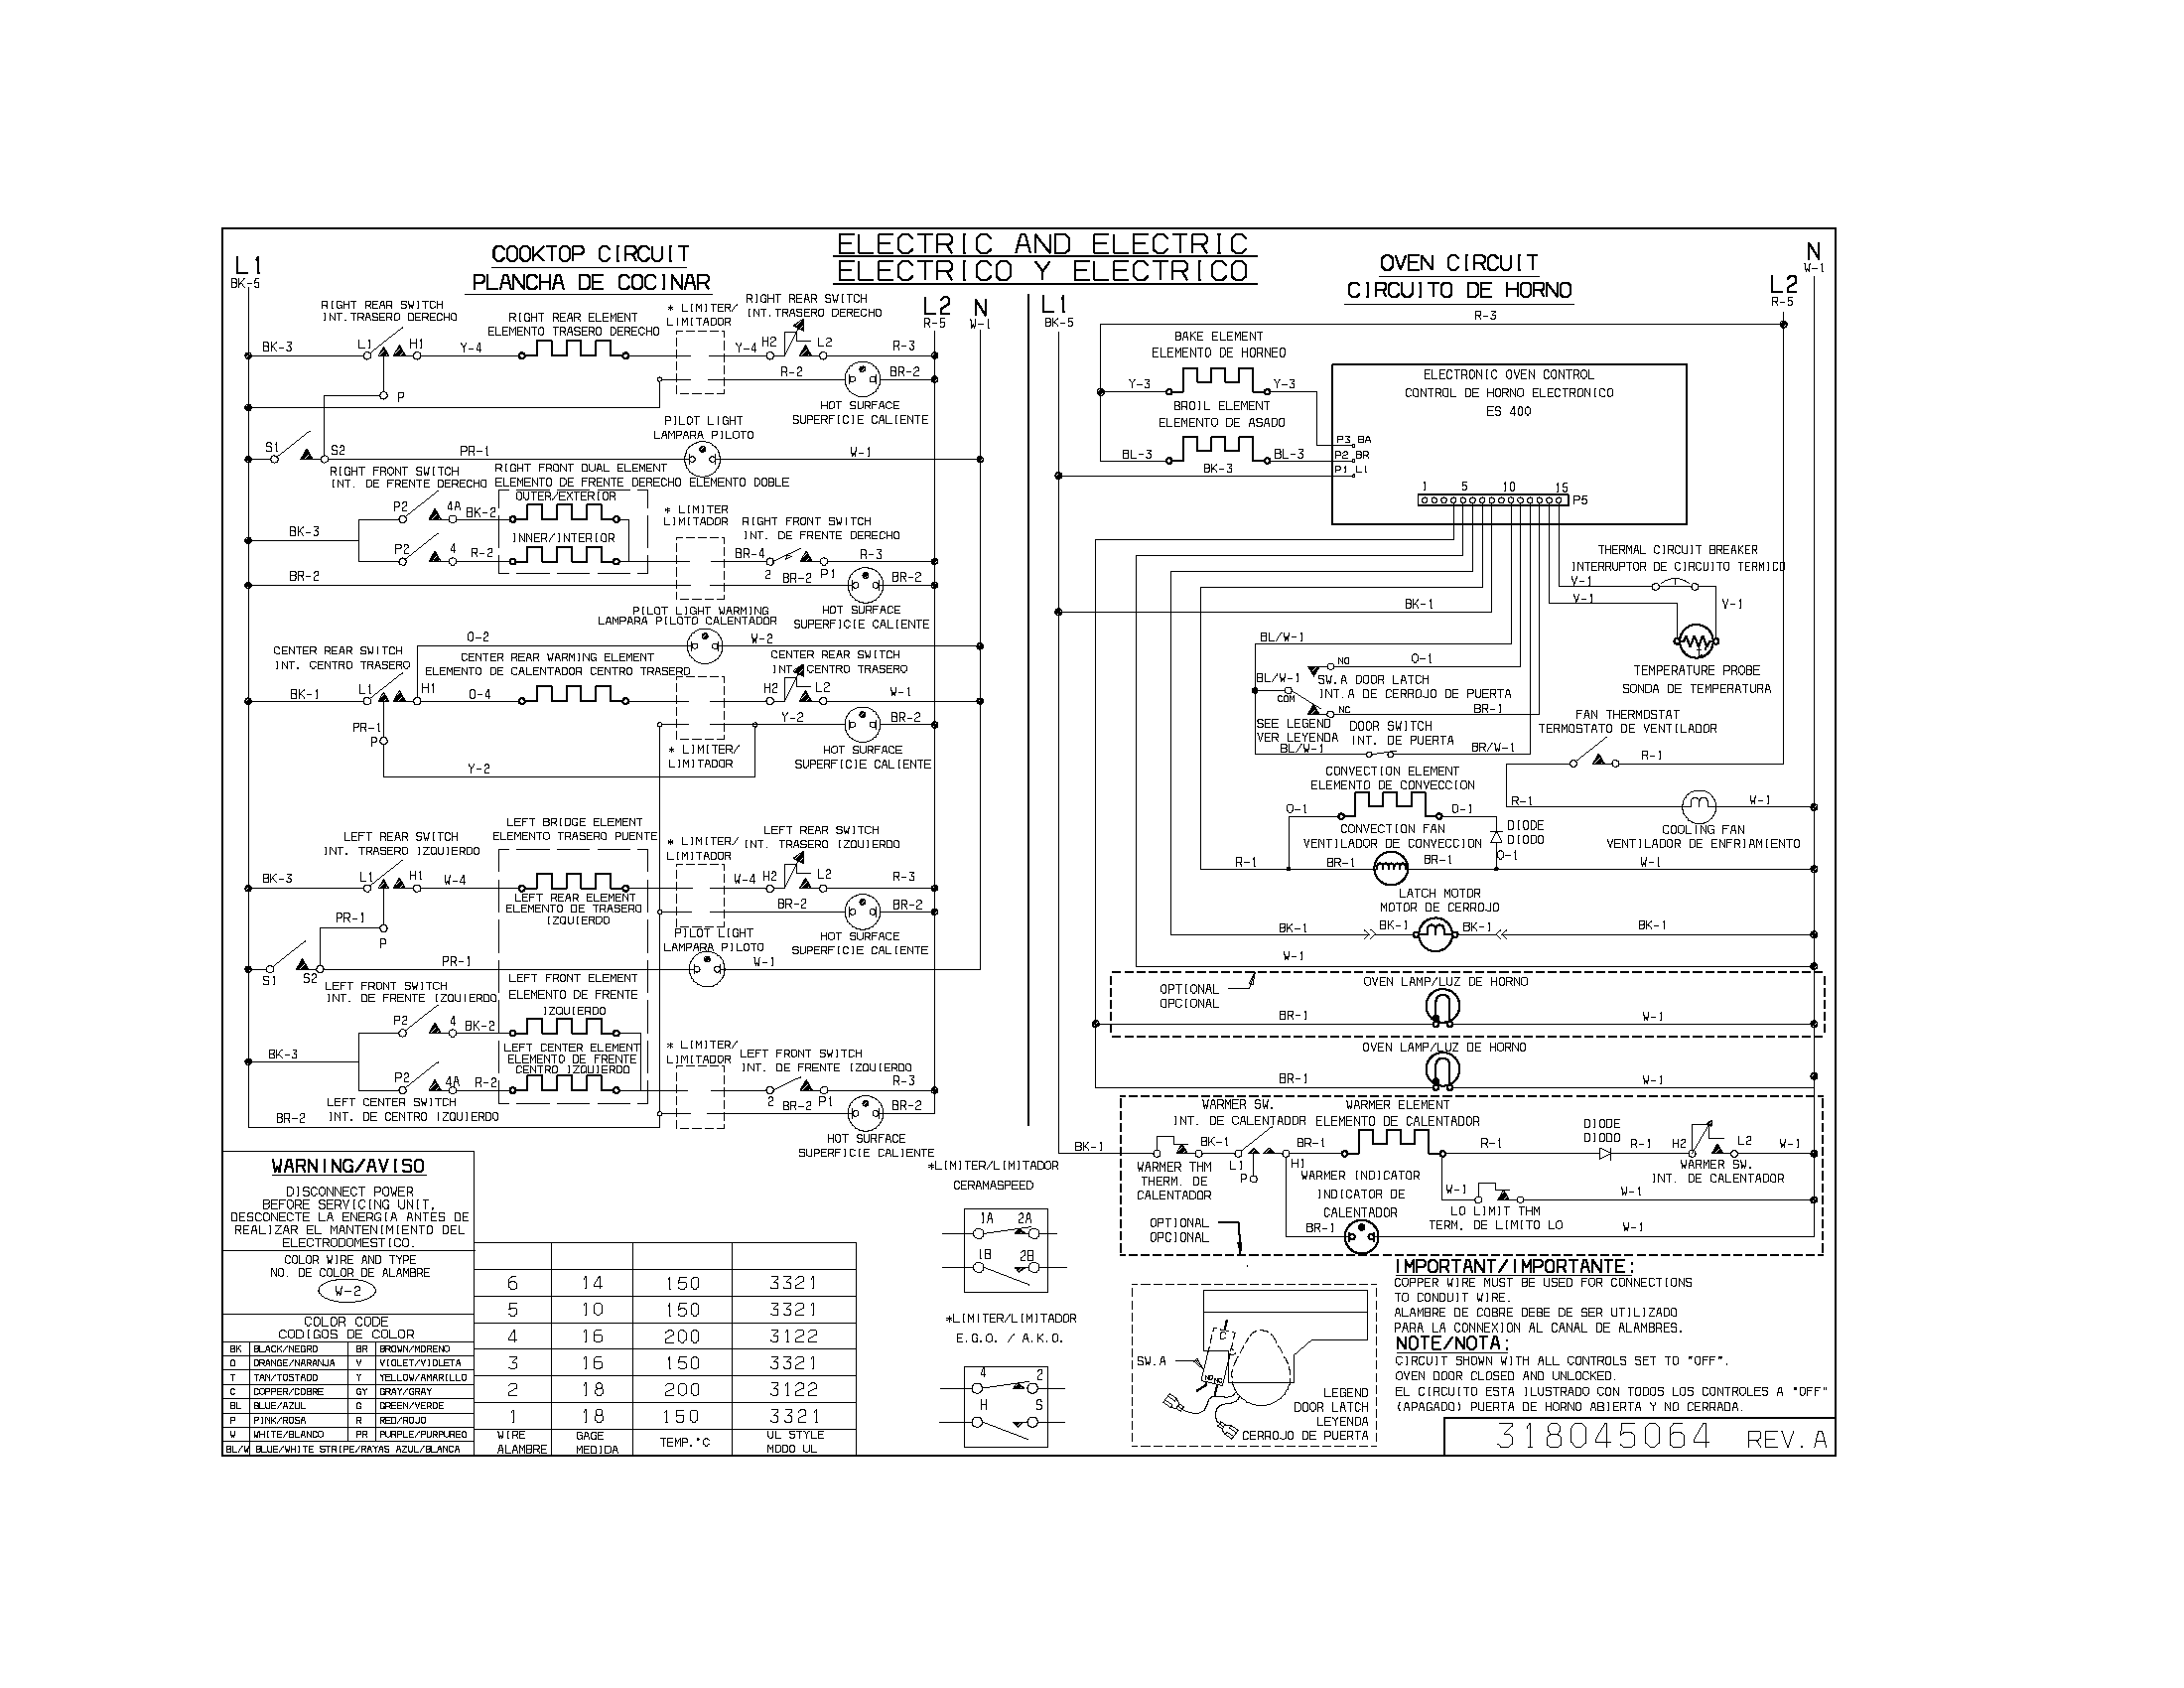 R32 Ac Wiring Diagram Home Air Conditioner Allove Skyline R 32 Gtr Explained Diagrams Gt